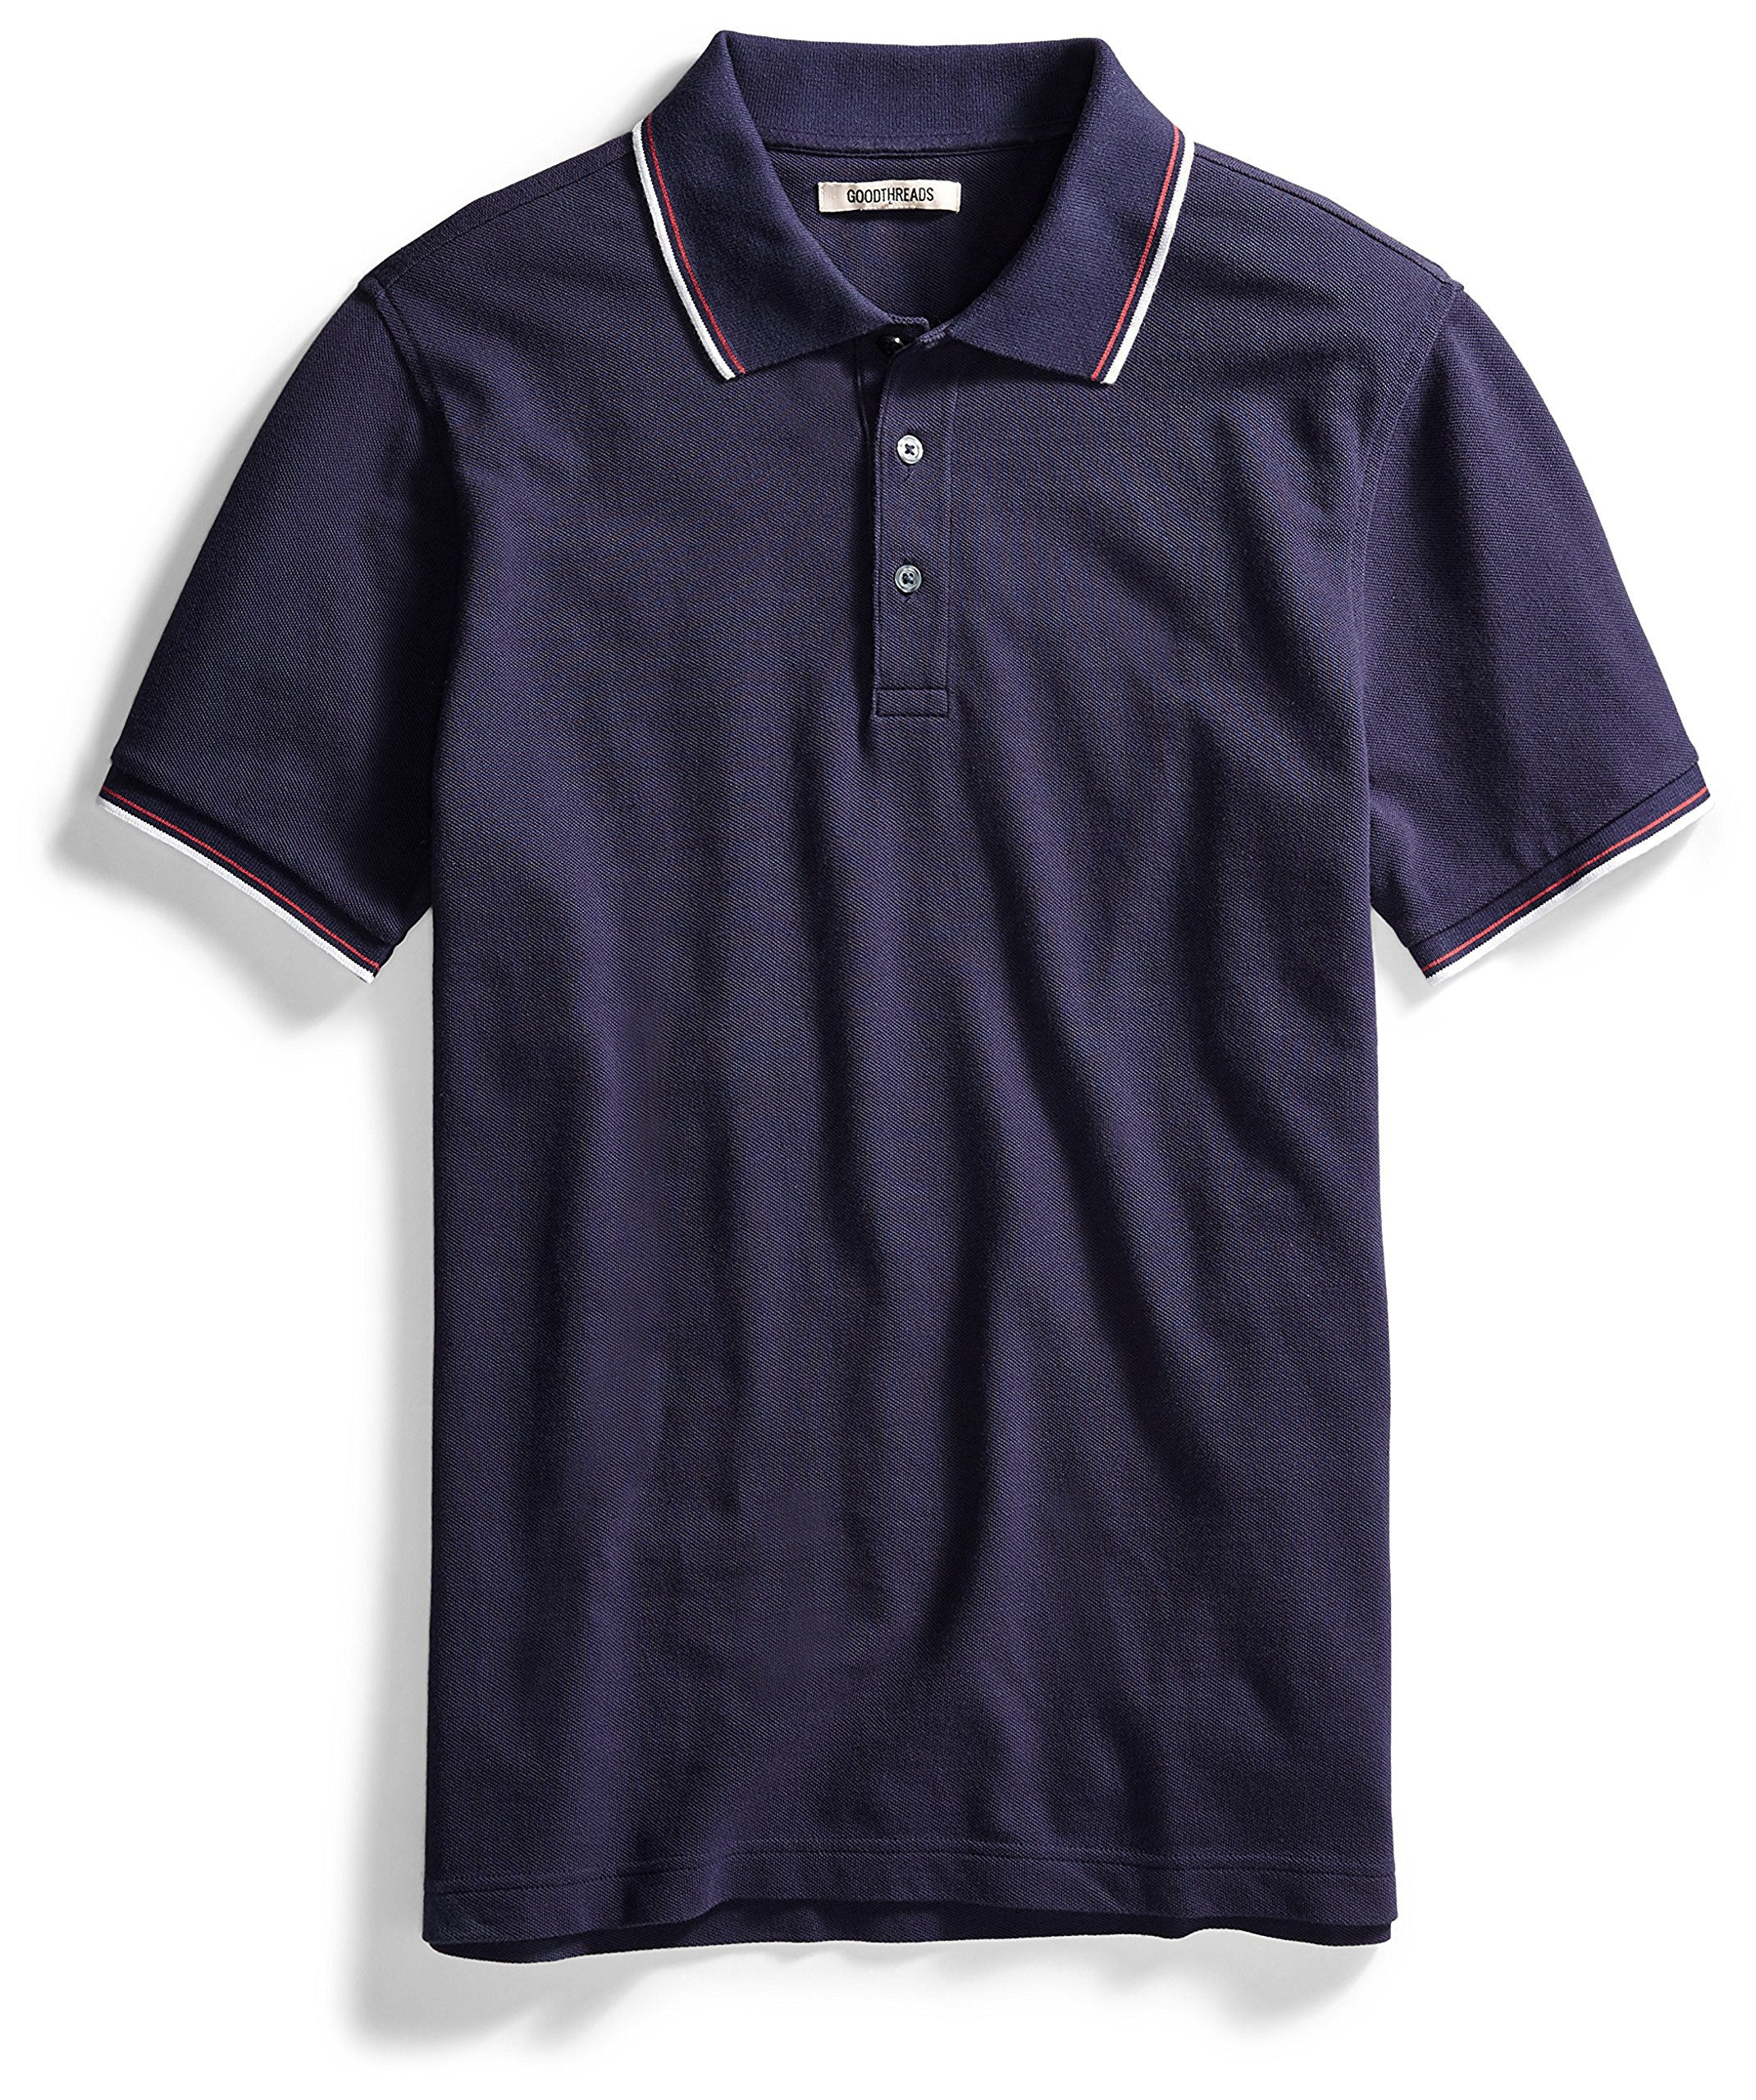 Goodthreads Men's Short-Sleeve Washed Pique Polo Shirt, Navy, X-Large